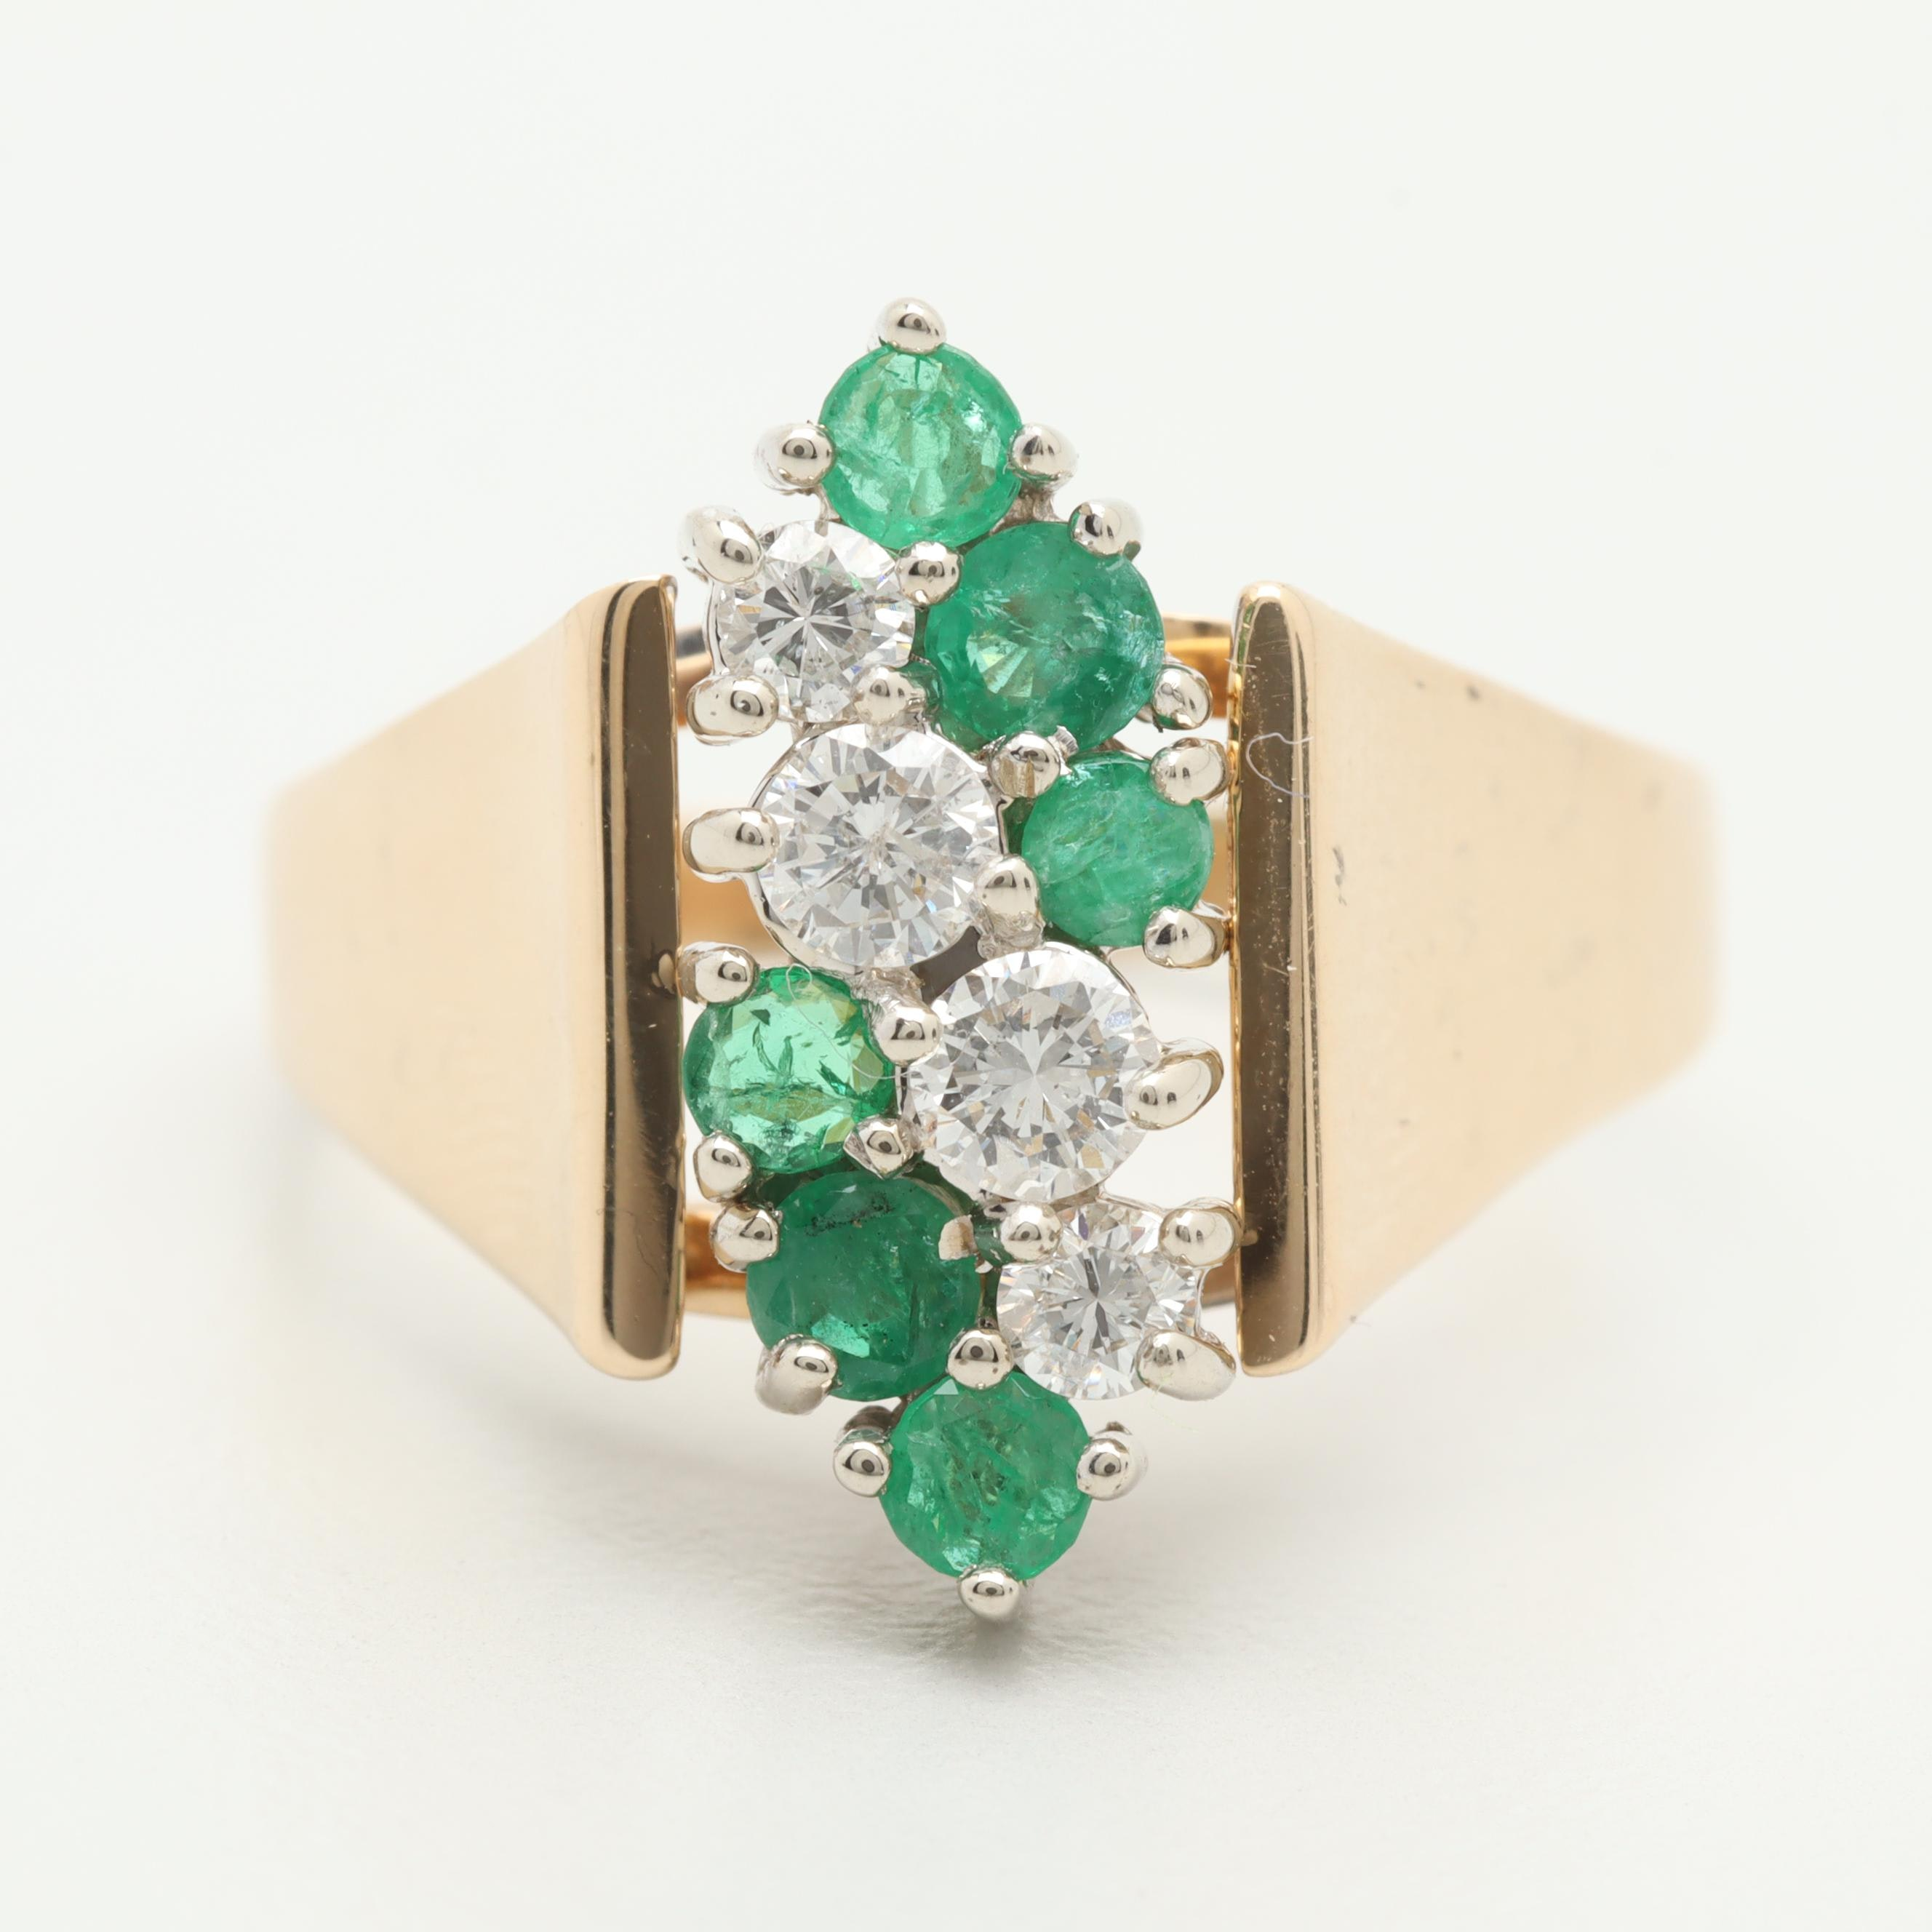 14K Yellow Gold Diamond and Emerald Ring with White Gold Accents